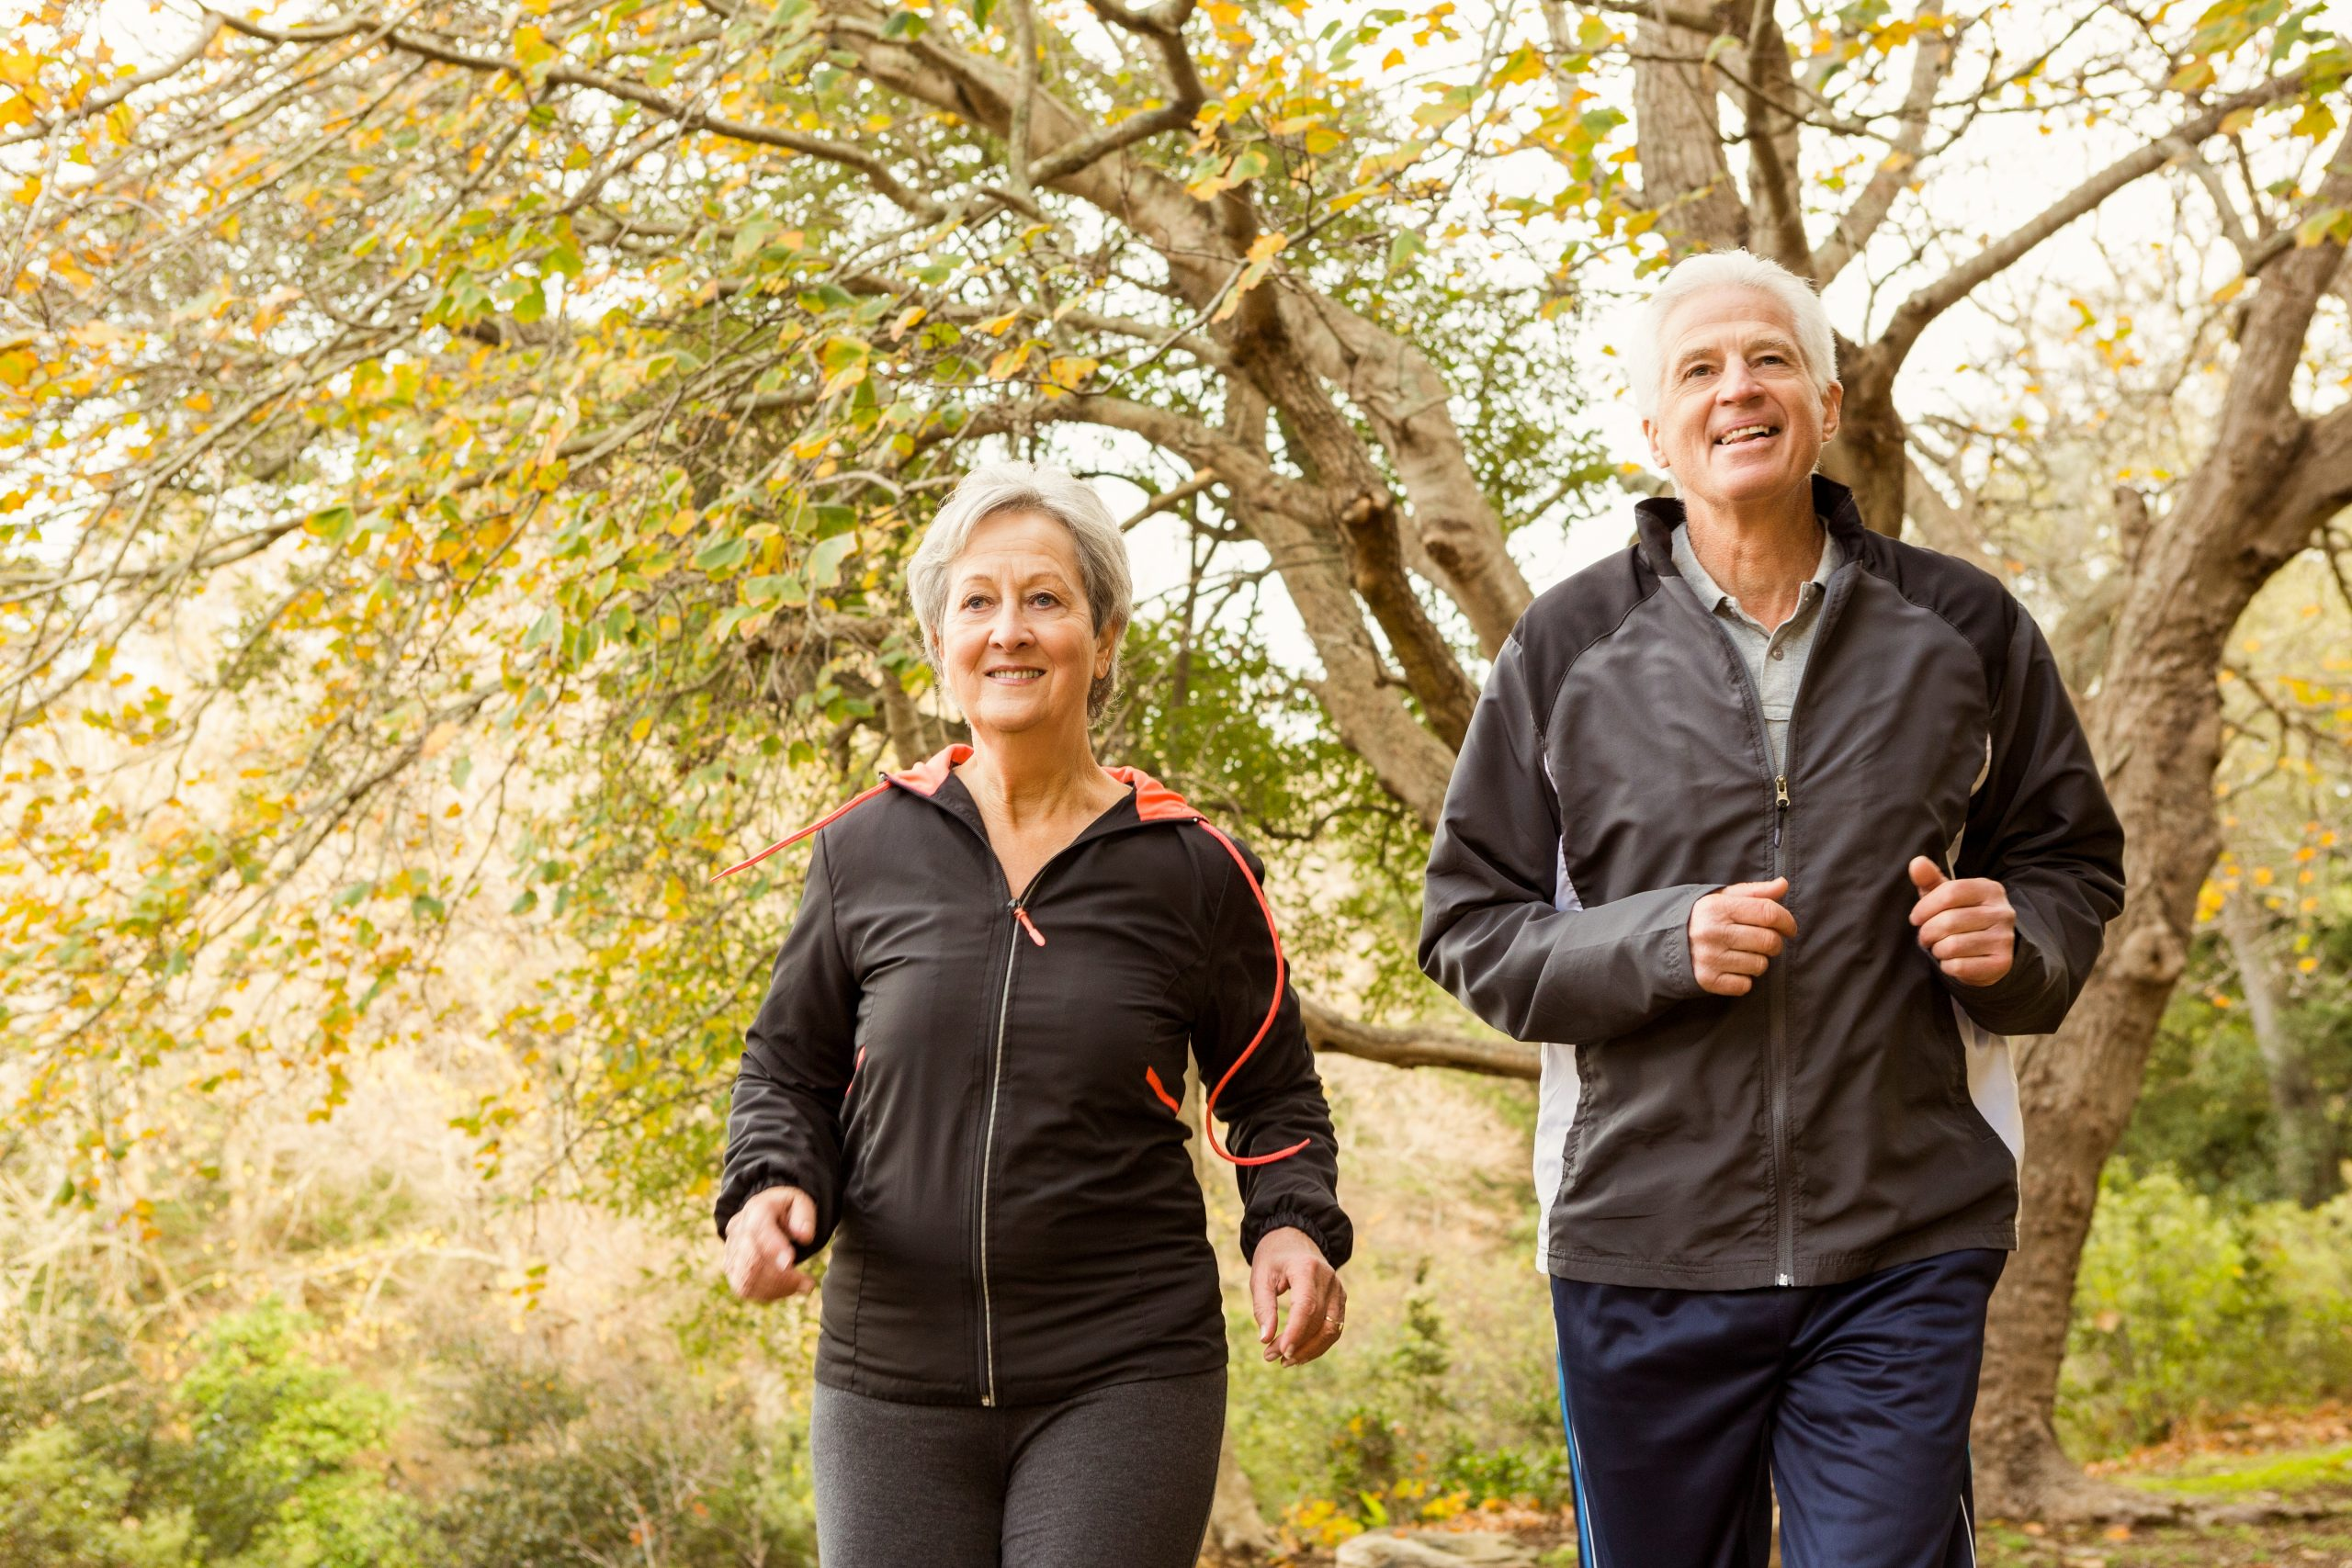 How to Prevent Pain When Walking With Arthritis | Feel Good Life with Coach Todd